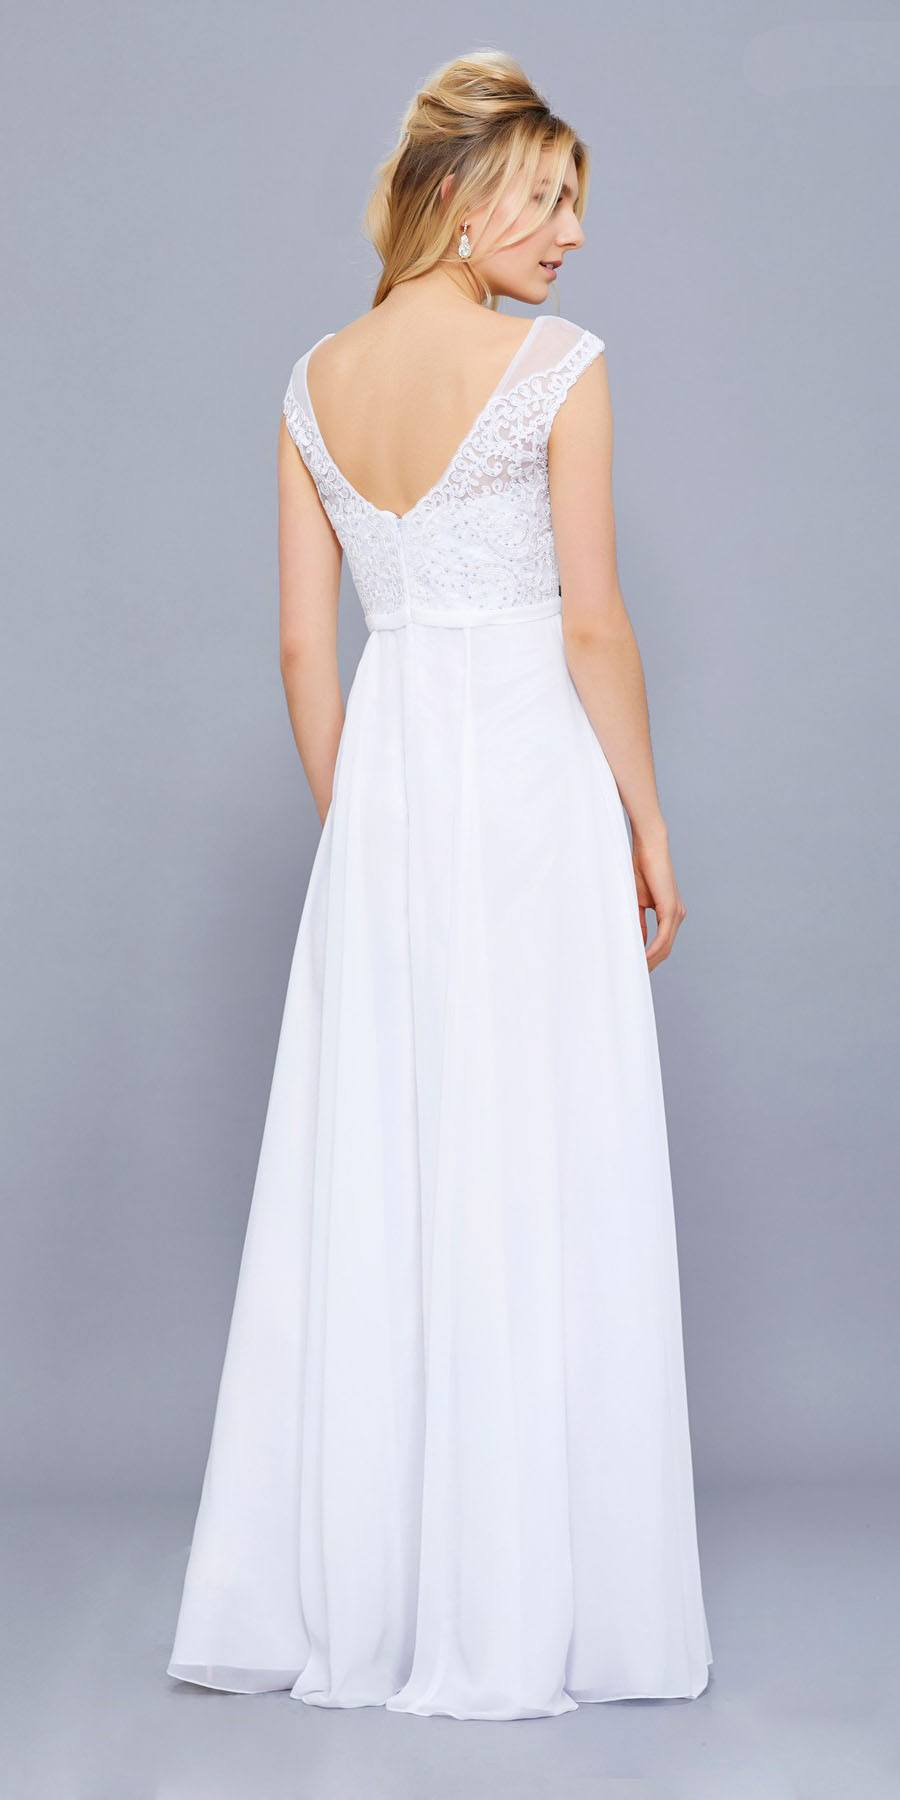 White Cap Sleeves Lace Bodice Chiffon A Line Long Formal